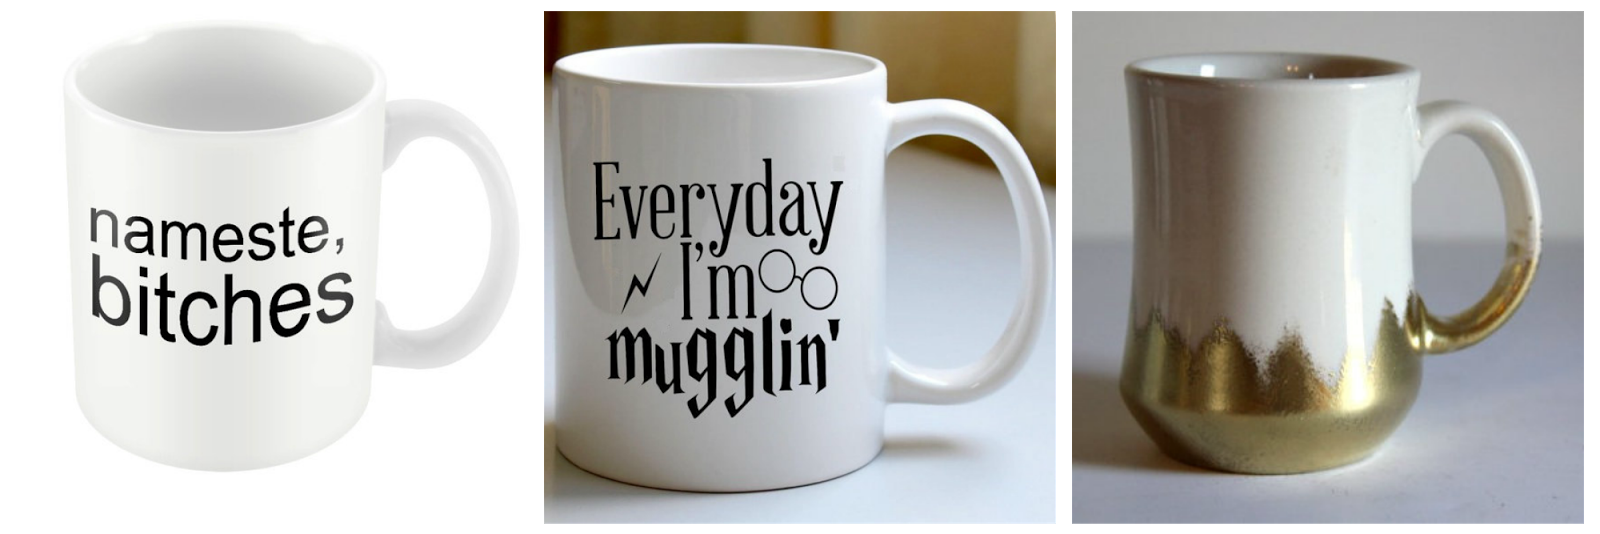 Etsy coffee mugs